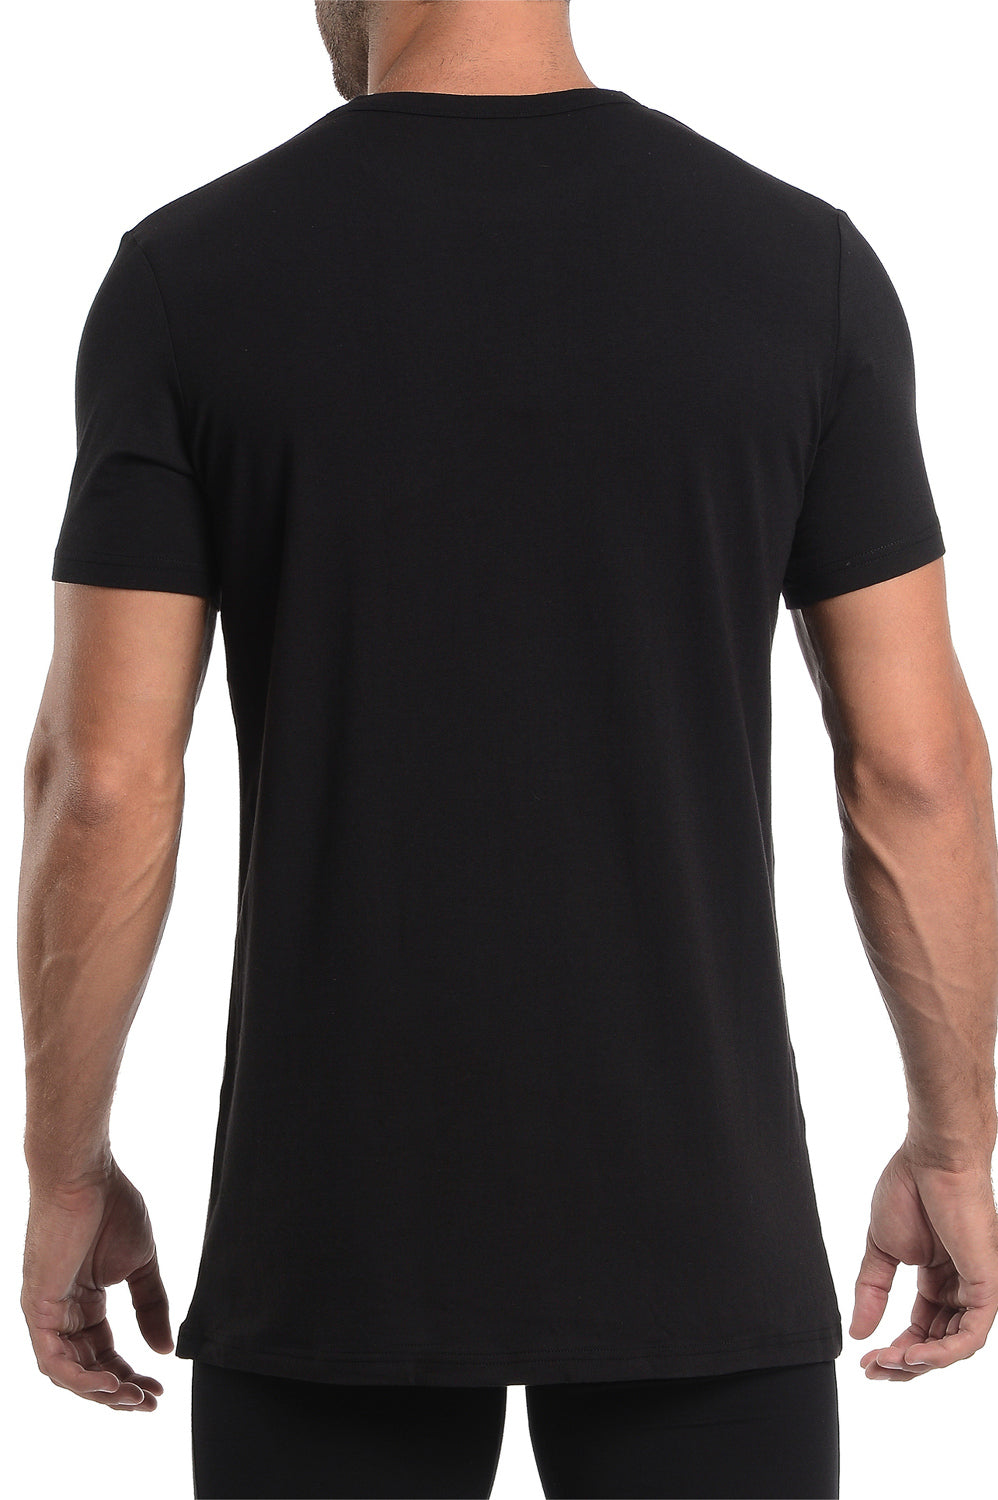 Wood-Brand-Mens-Crew-Neck-Undershirt-6100